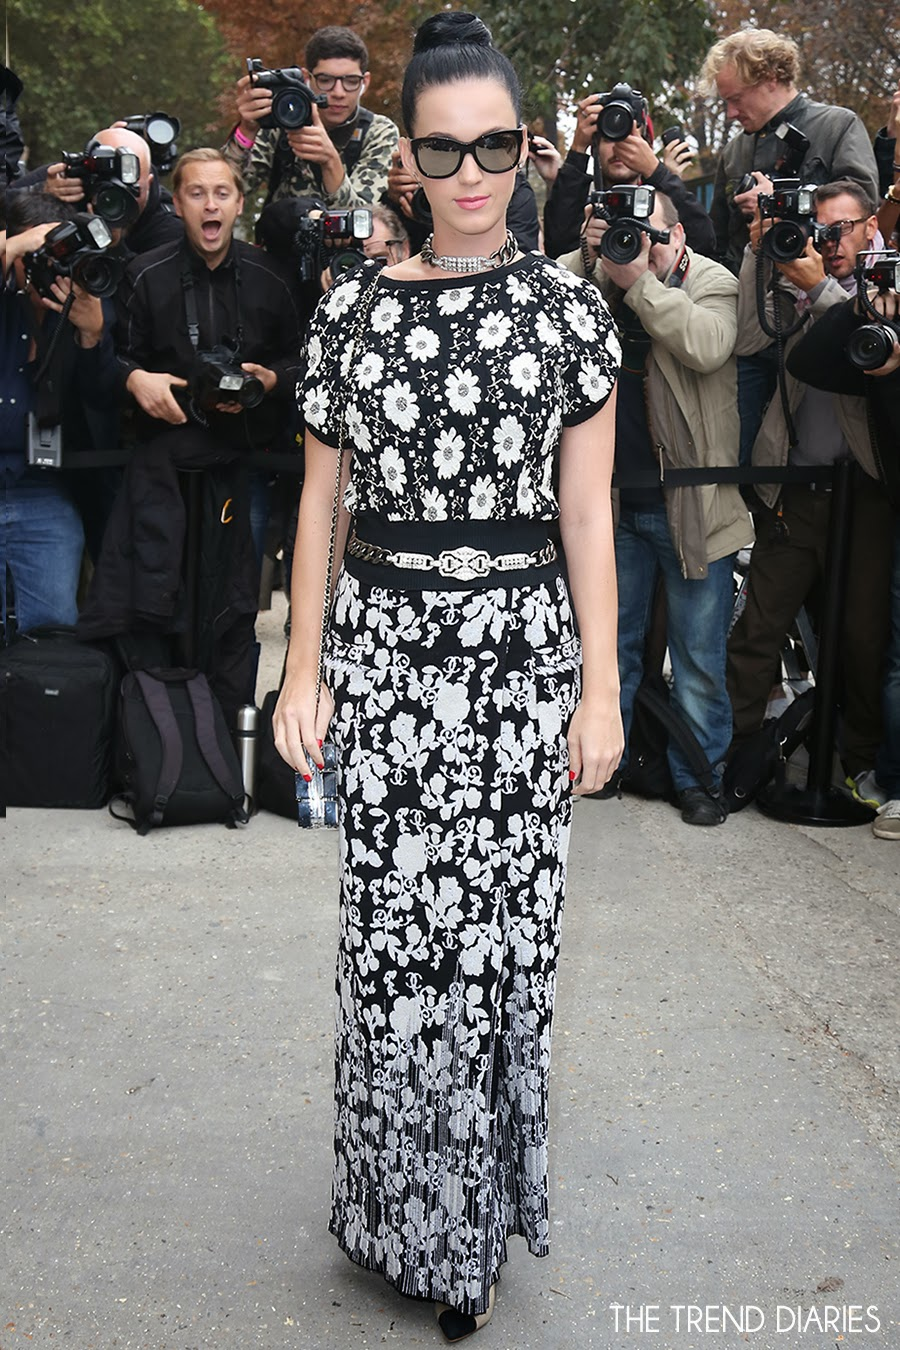 katy-perry-style-chanel-lego-clear-clutch-paris-fashion-week-chanel-fashion-show-flower-dress